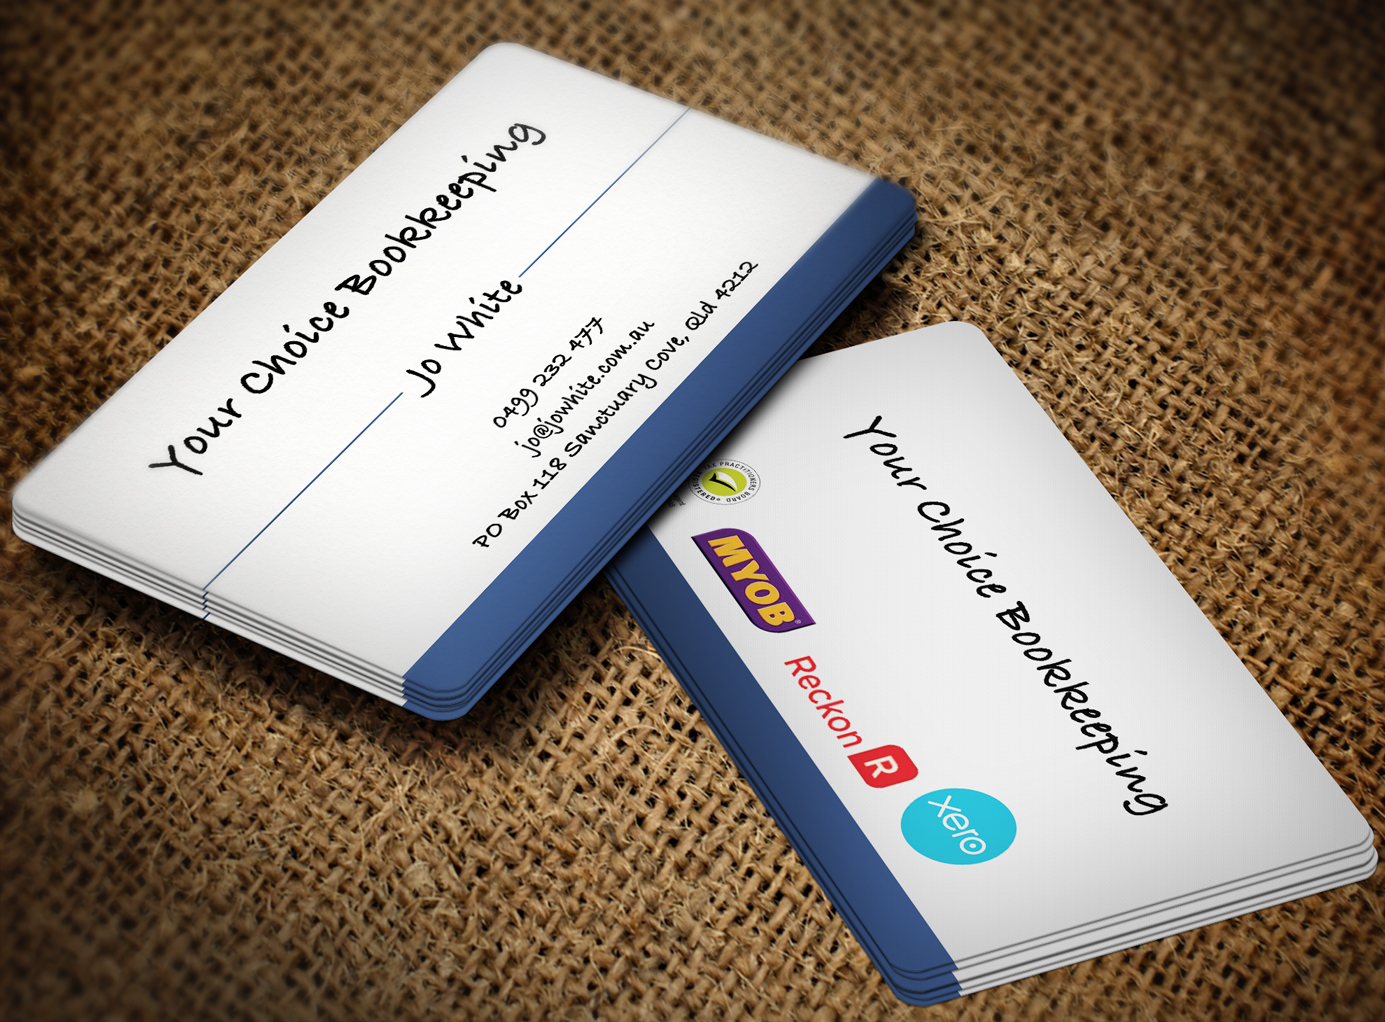 Elegant modern business card design for your choice bookkeeping business card design by lanka ama for your choice bookkeeping business cards design 6025714 magicingreecefo Choice Image